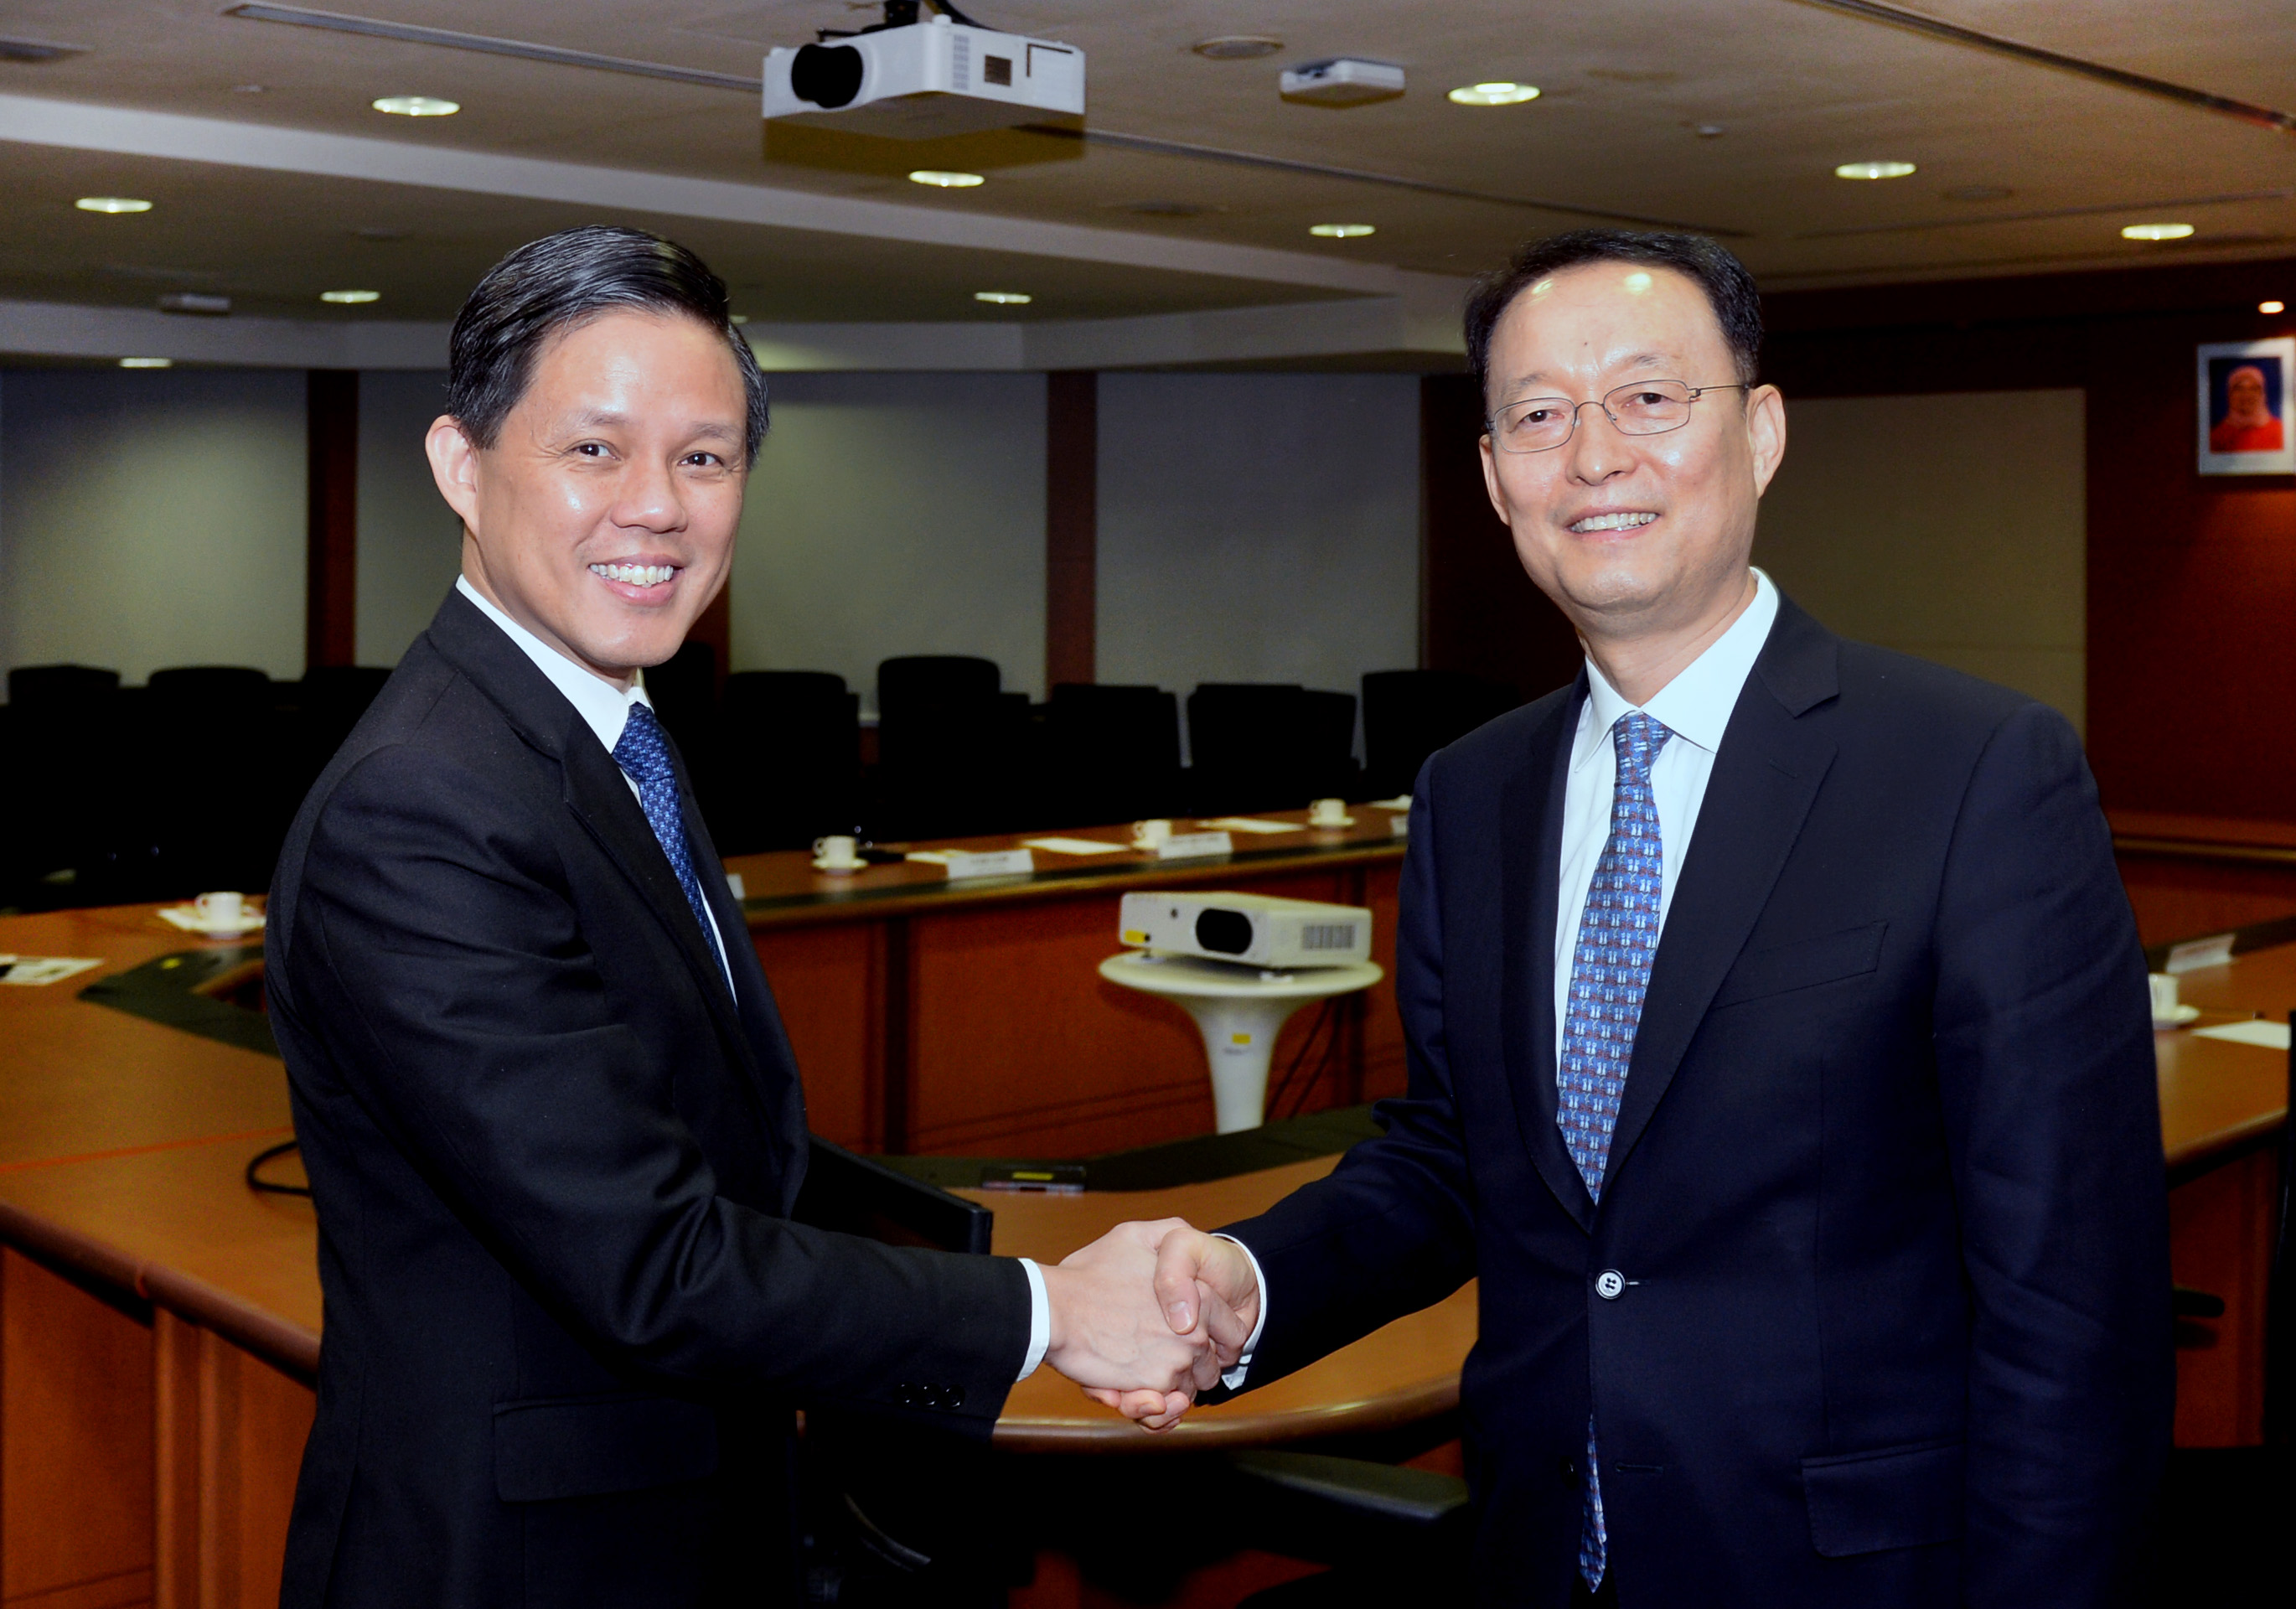 Minister Paik pushes for Korea-Singapore ties in industry, energy, and trade